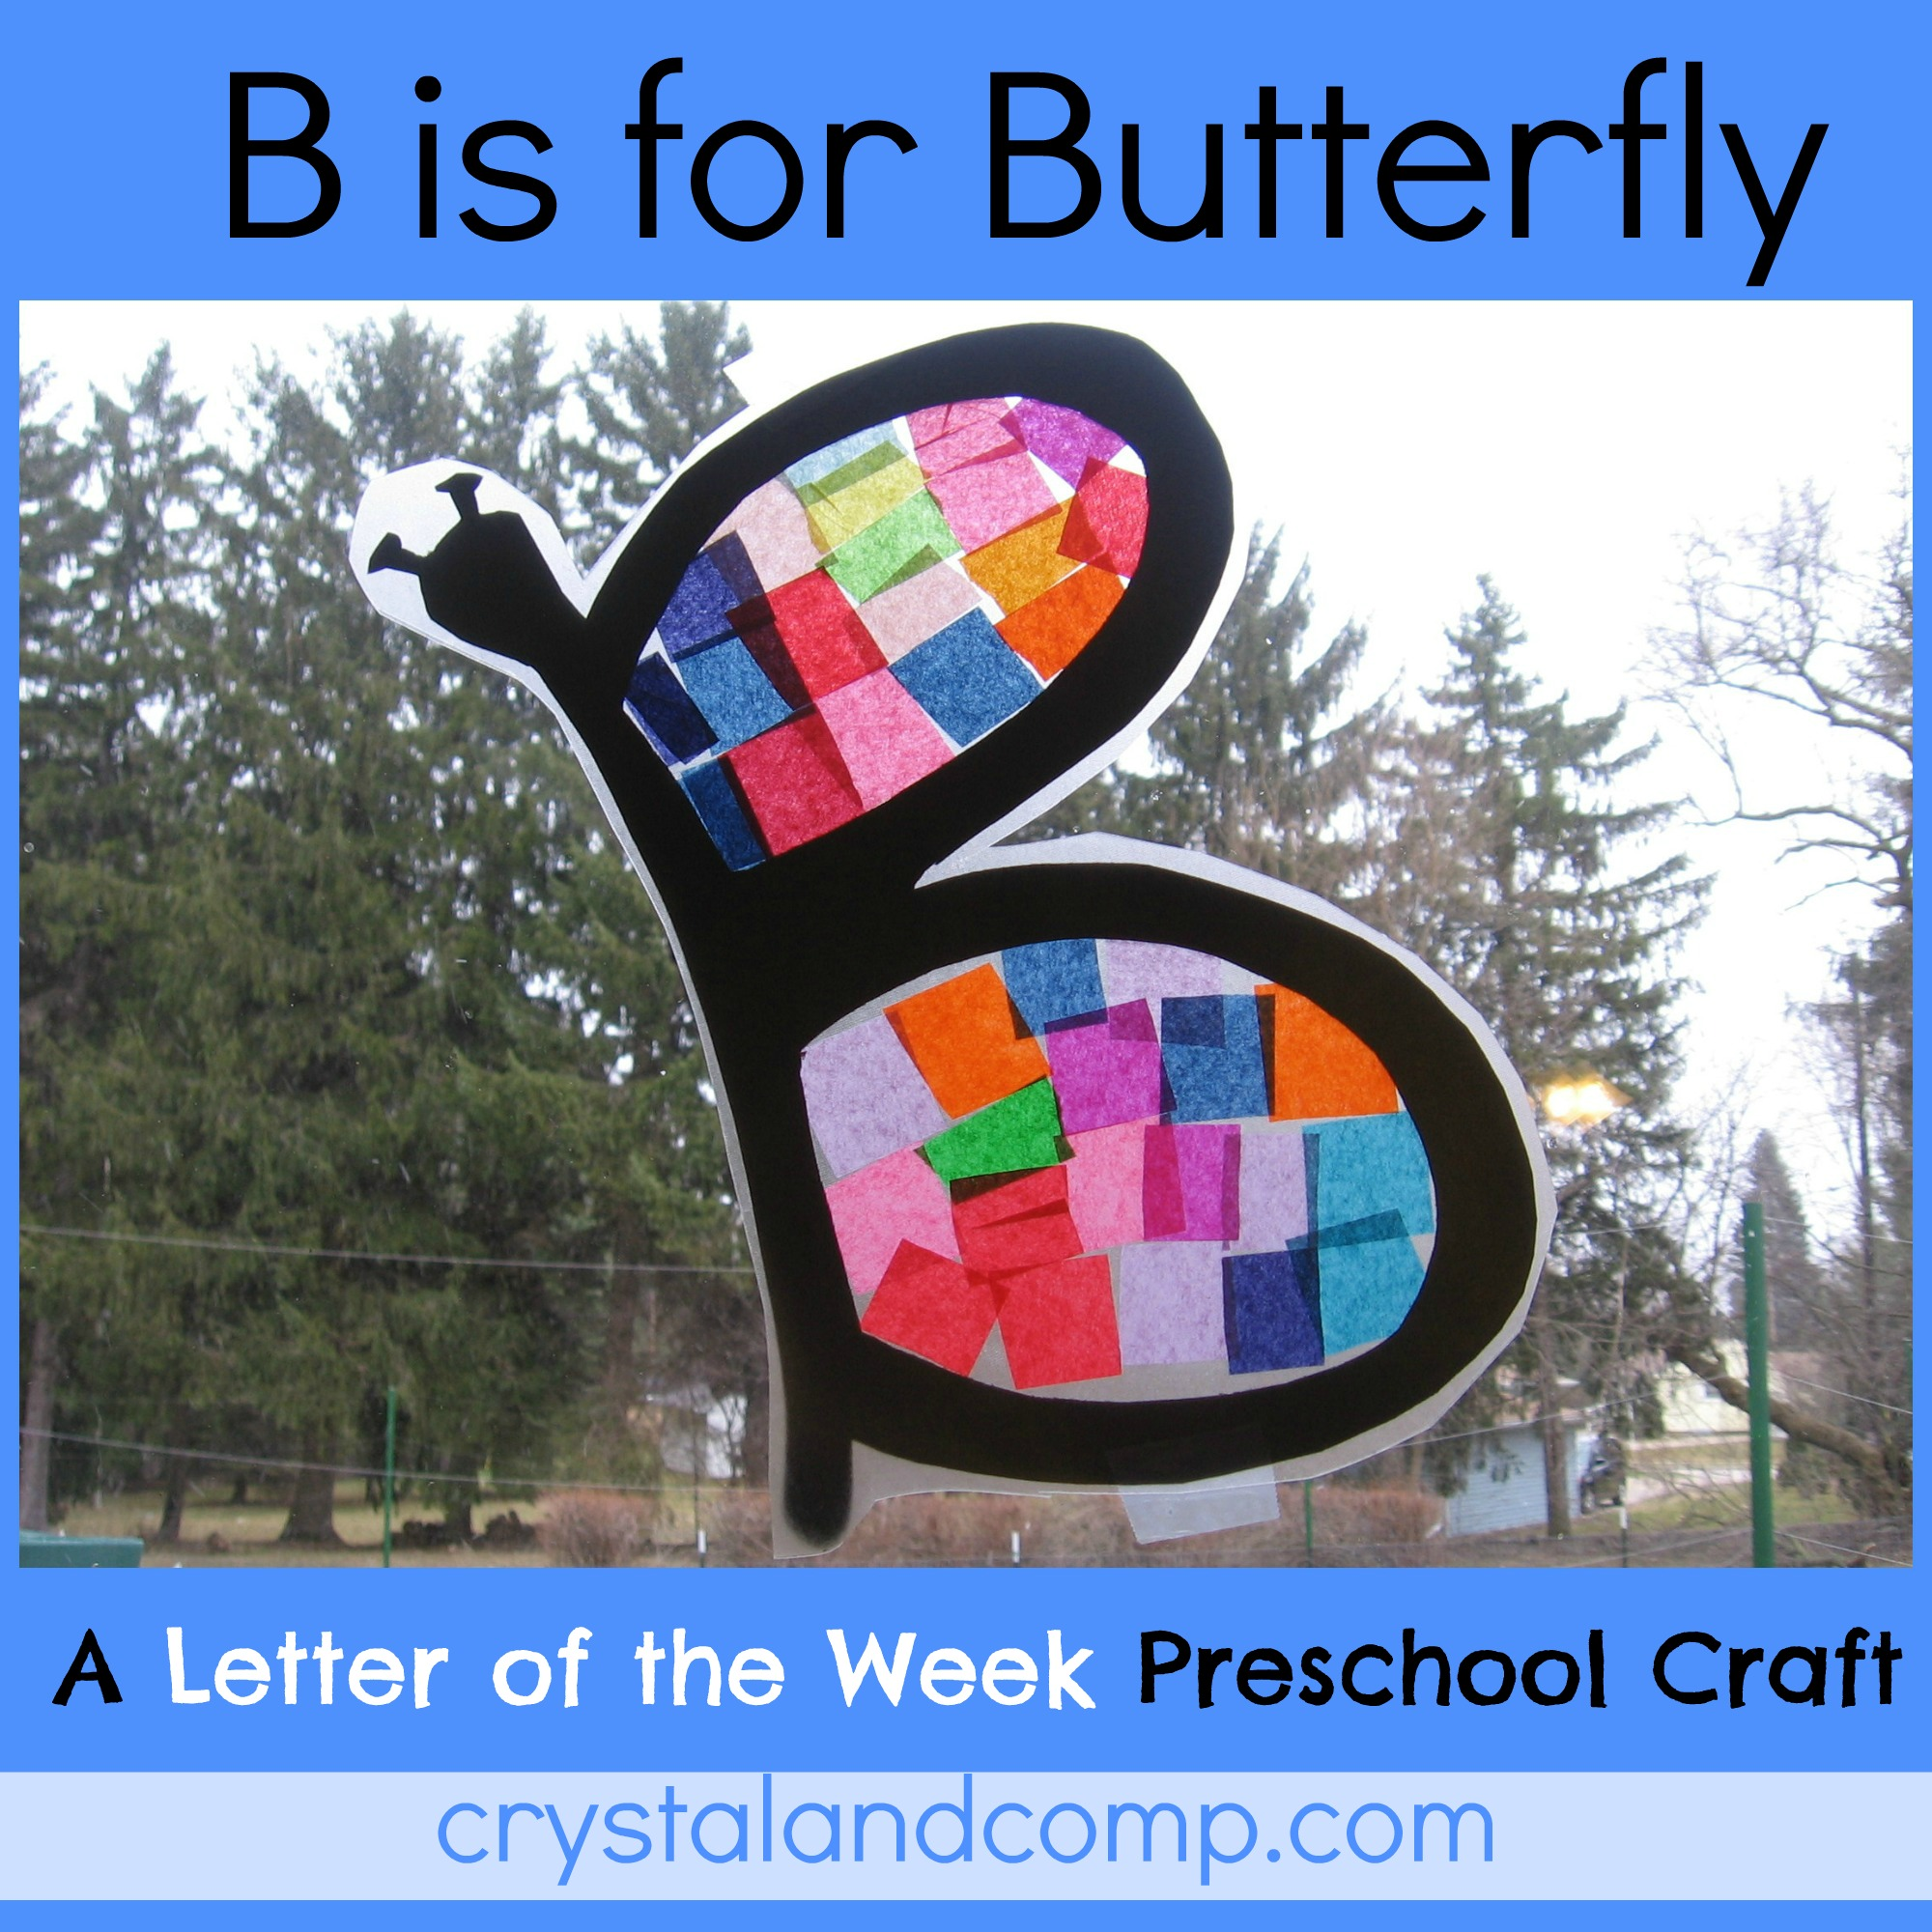 Letter of the Week: B is for Butterfly